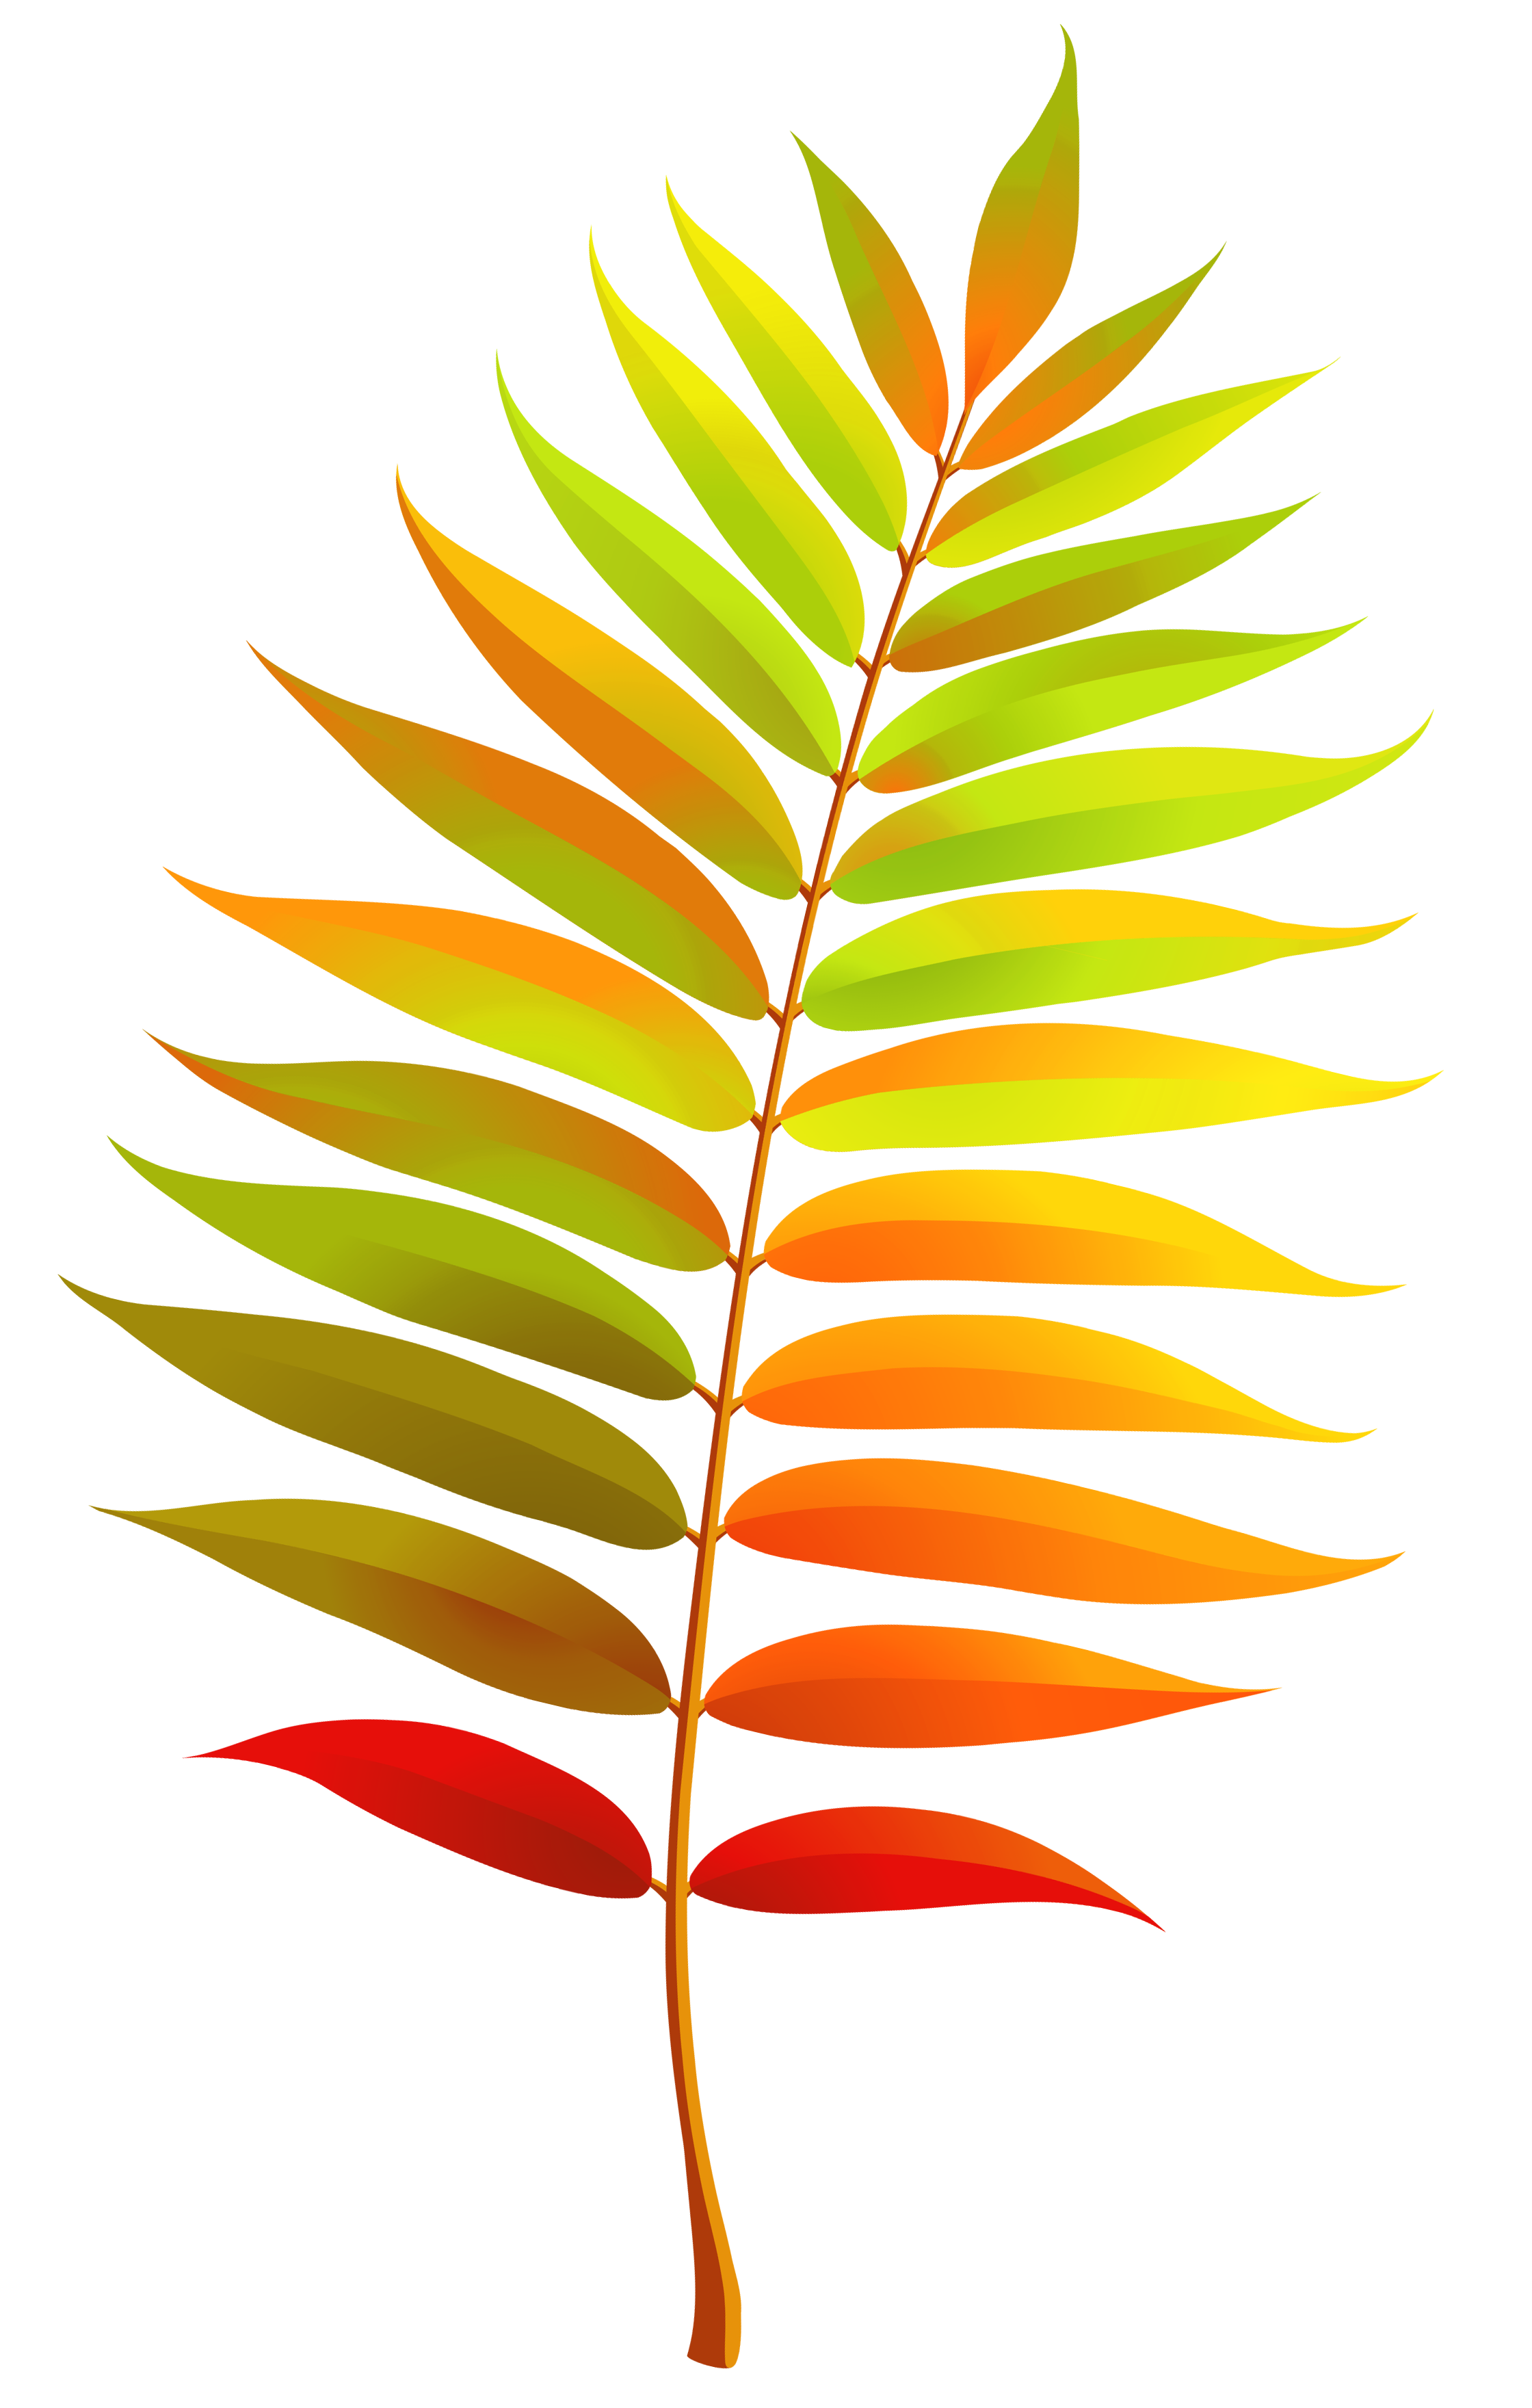 Colorful_Transparent_Fall_Leaf_Clipart.png?m=1409675820.